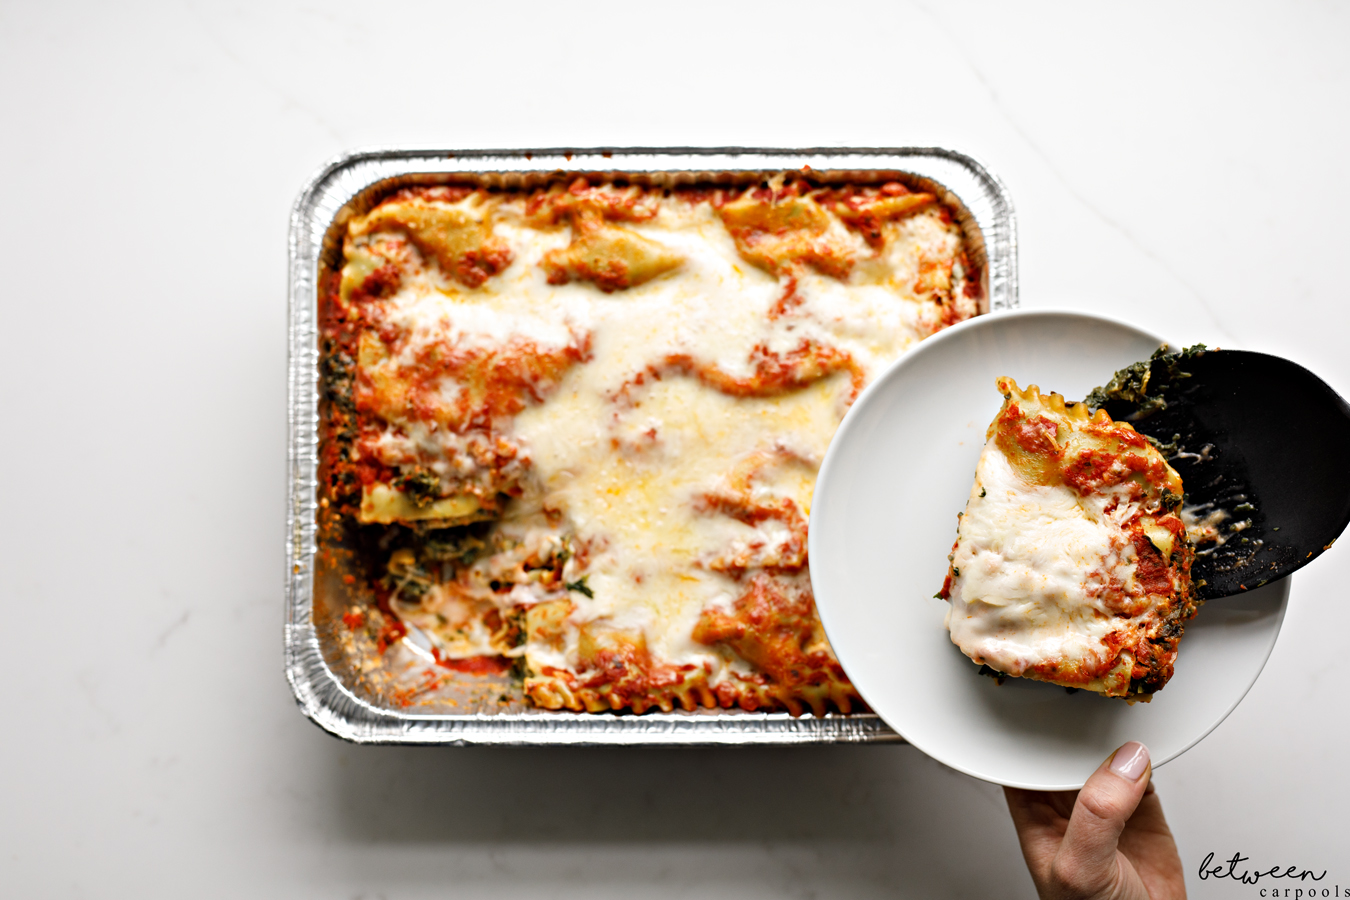 The 9x13 Life: Easy Lasagna That Tastes So Gourmet. Make this during the 9 days. Or to enjoy during a long, cozy winter night. Or keep it in the freezer to pull out for those nights when dinner just isn't going to happen.